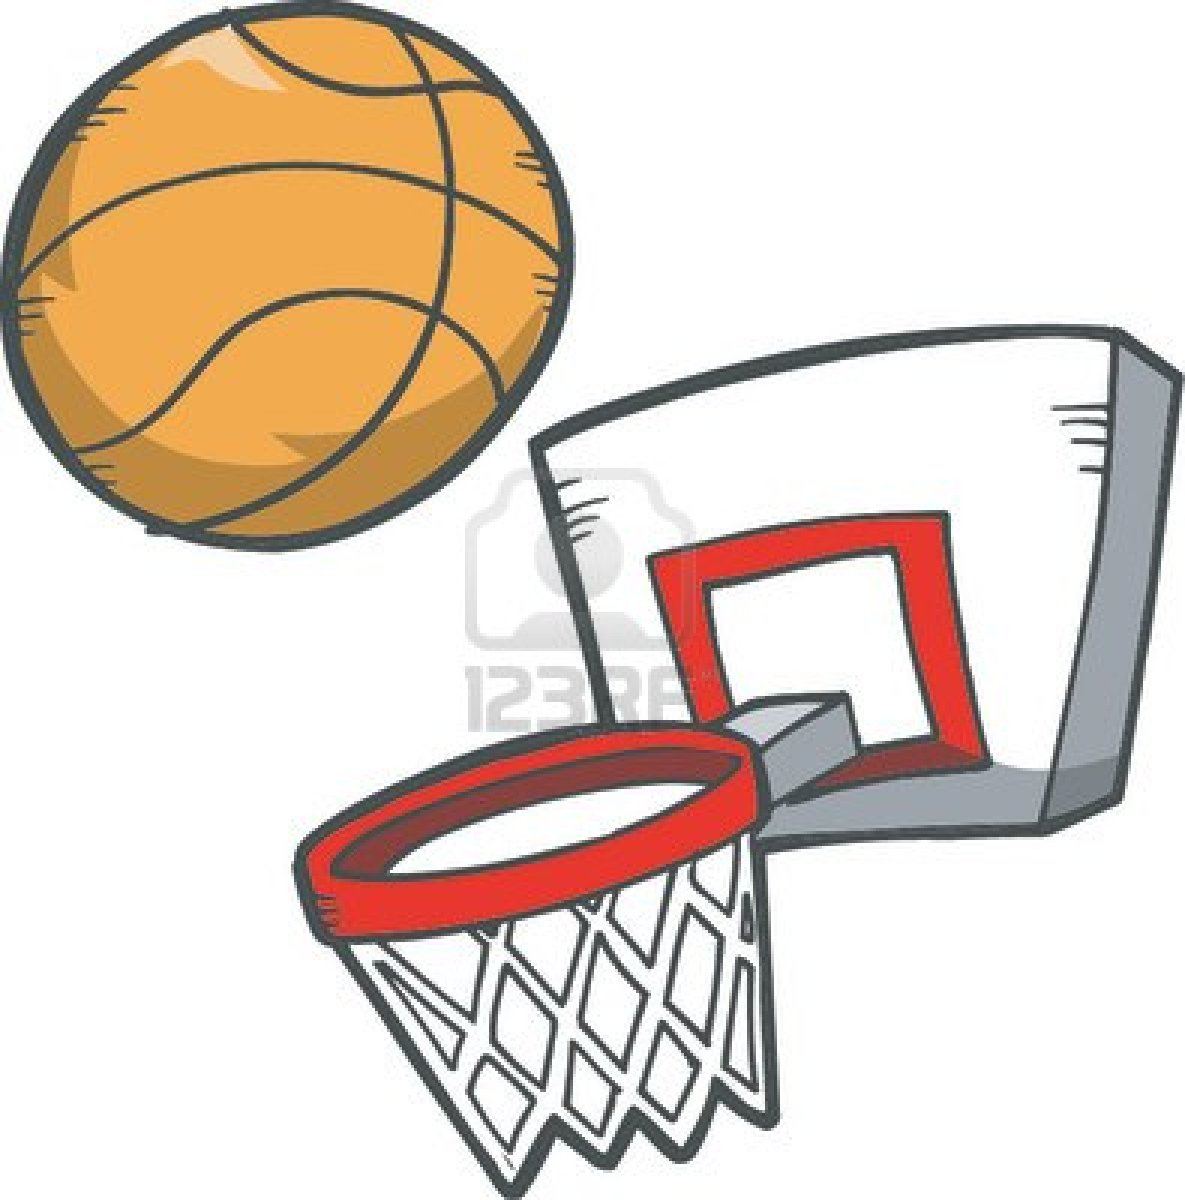 Basketball Hoop And Ball Clipart 148 X 150